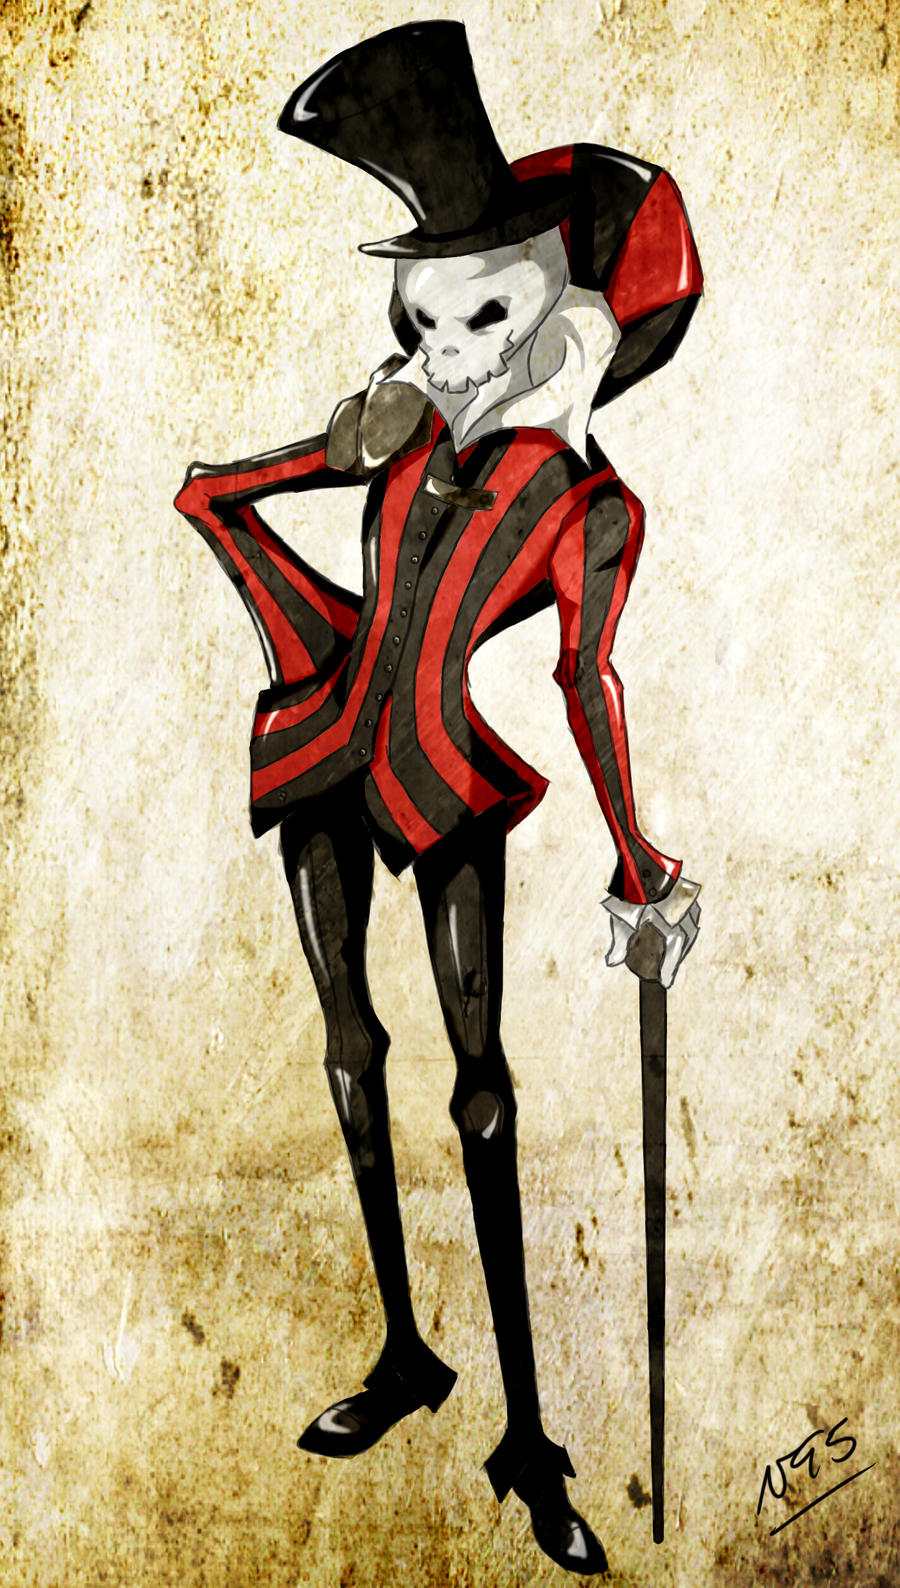 Scary - Circus' Illusionist by nachuu95 on DeviantArt